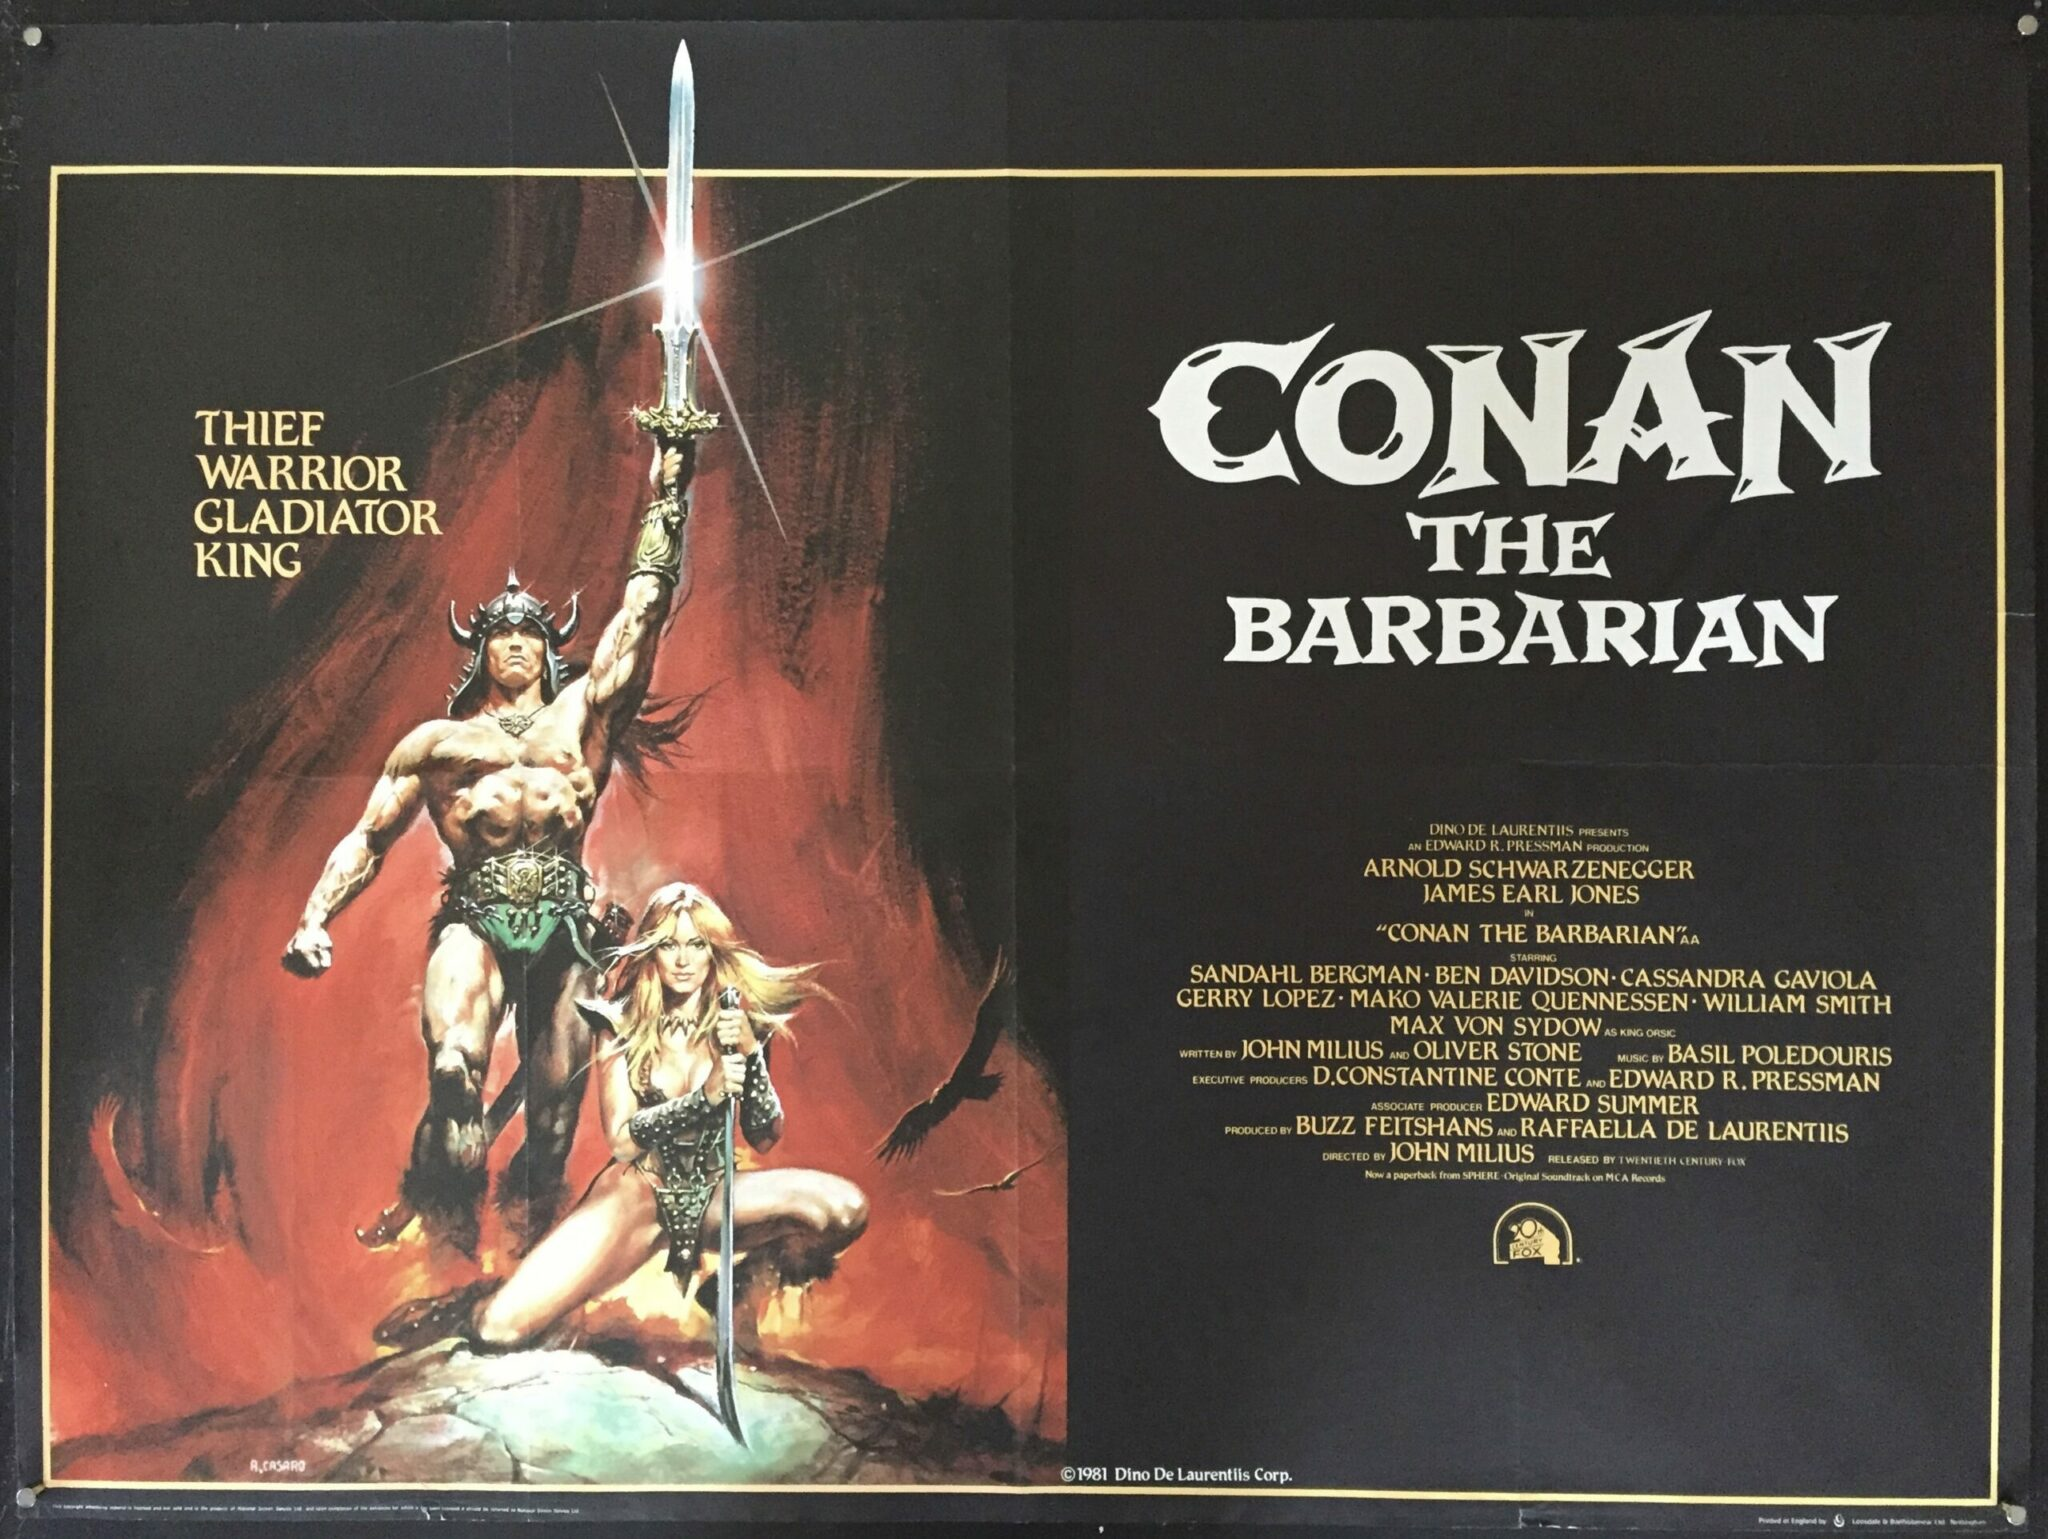 Conan, The Barbarian (1982), written by Oliver Stone.